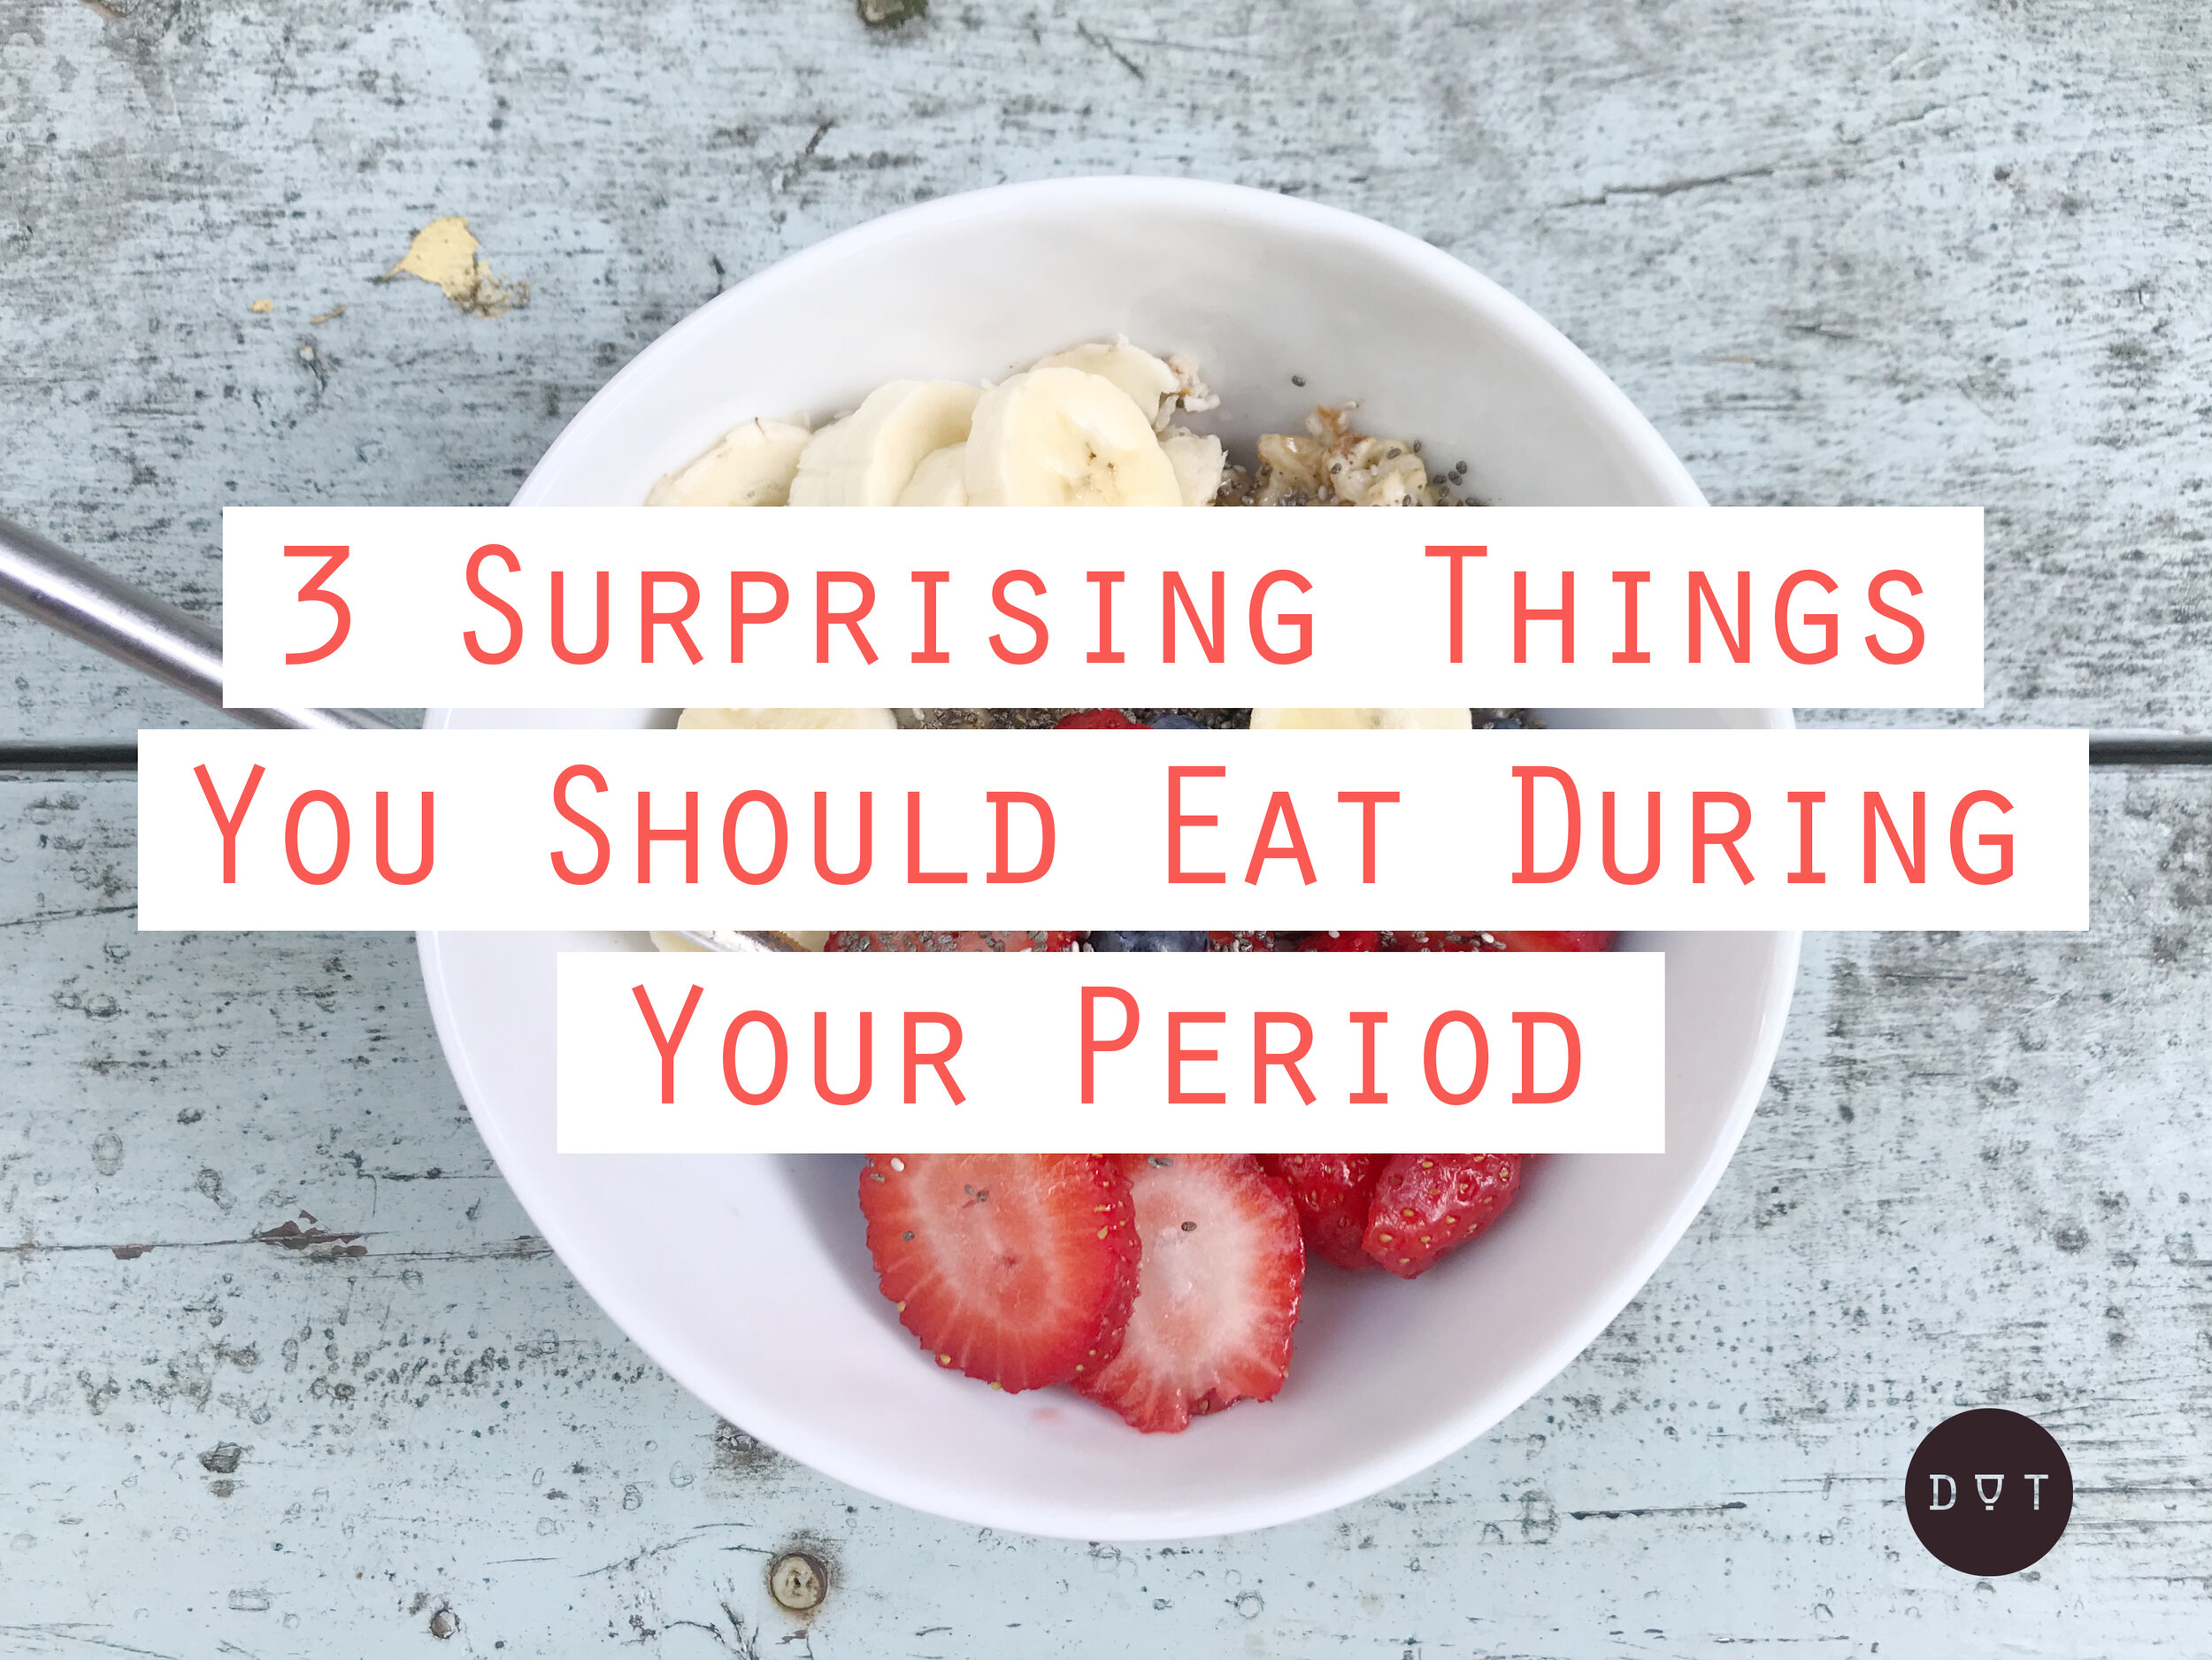 What to eat during your period